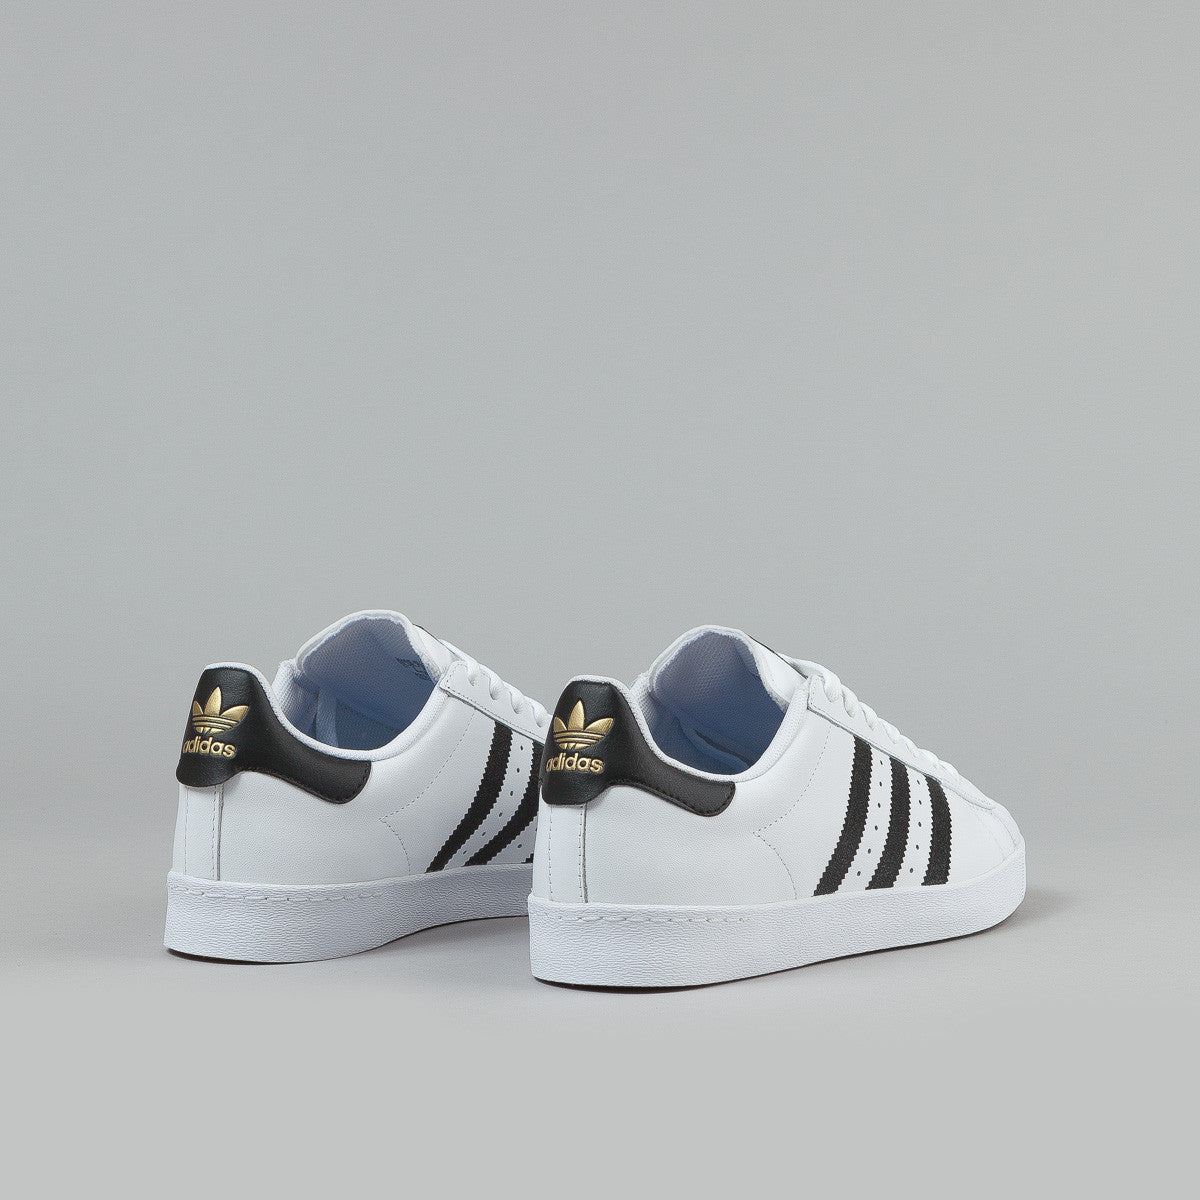 Cheap Adidas Superstar Vulc Adv Collegiate Navy / Cream White